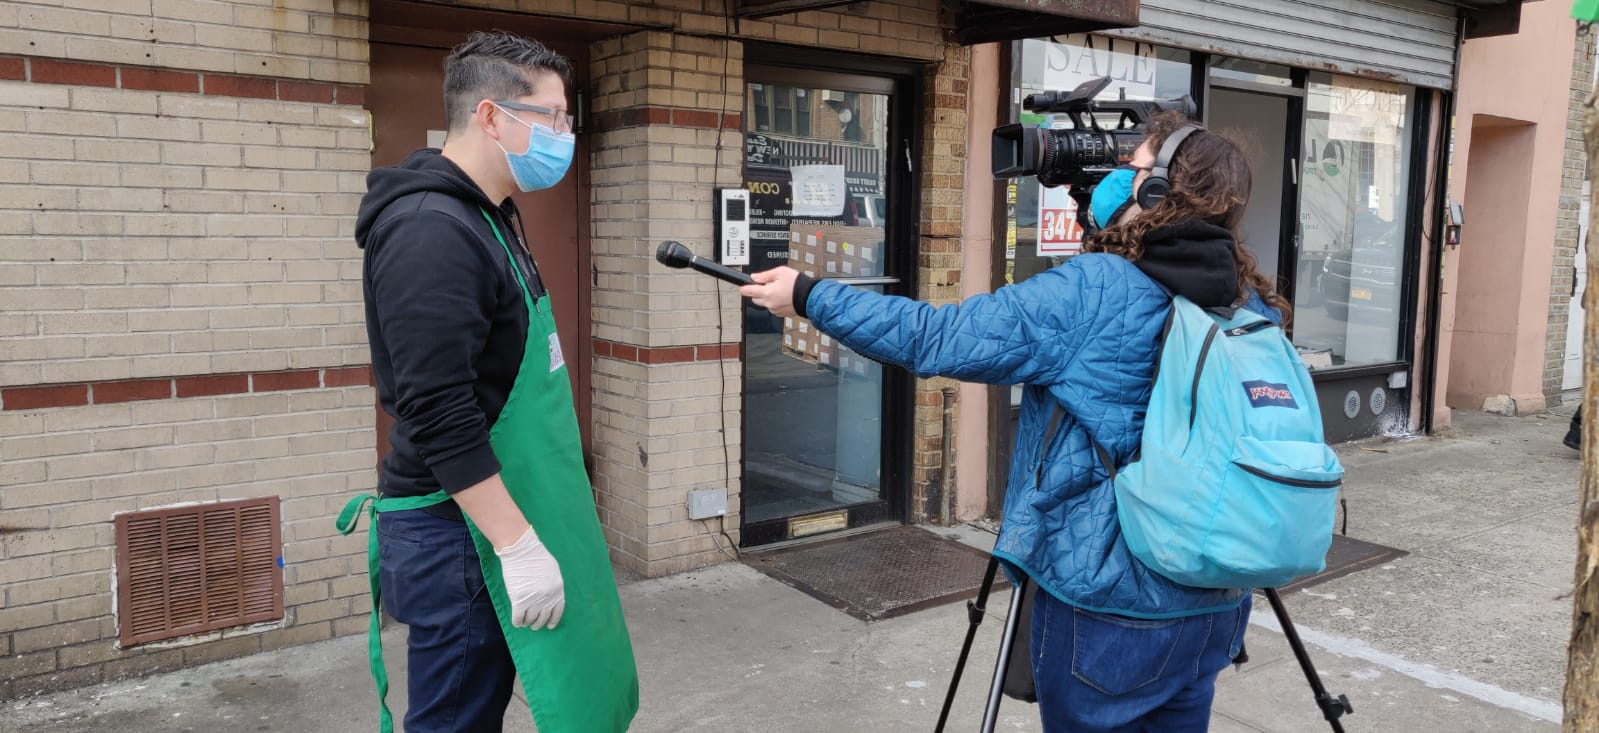 chelsea Kat of NY1 interviewed chef Ruben Diaz of Masbia during MLK Day in covid-19 times